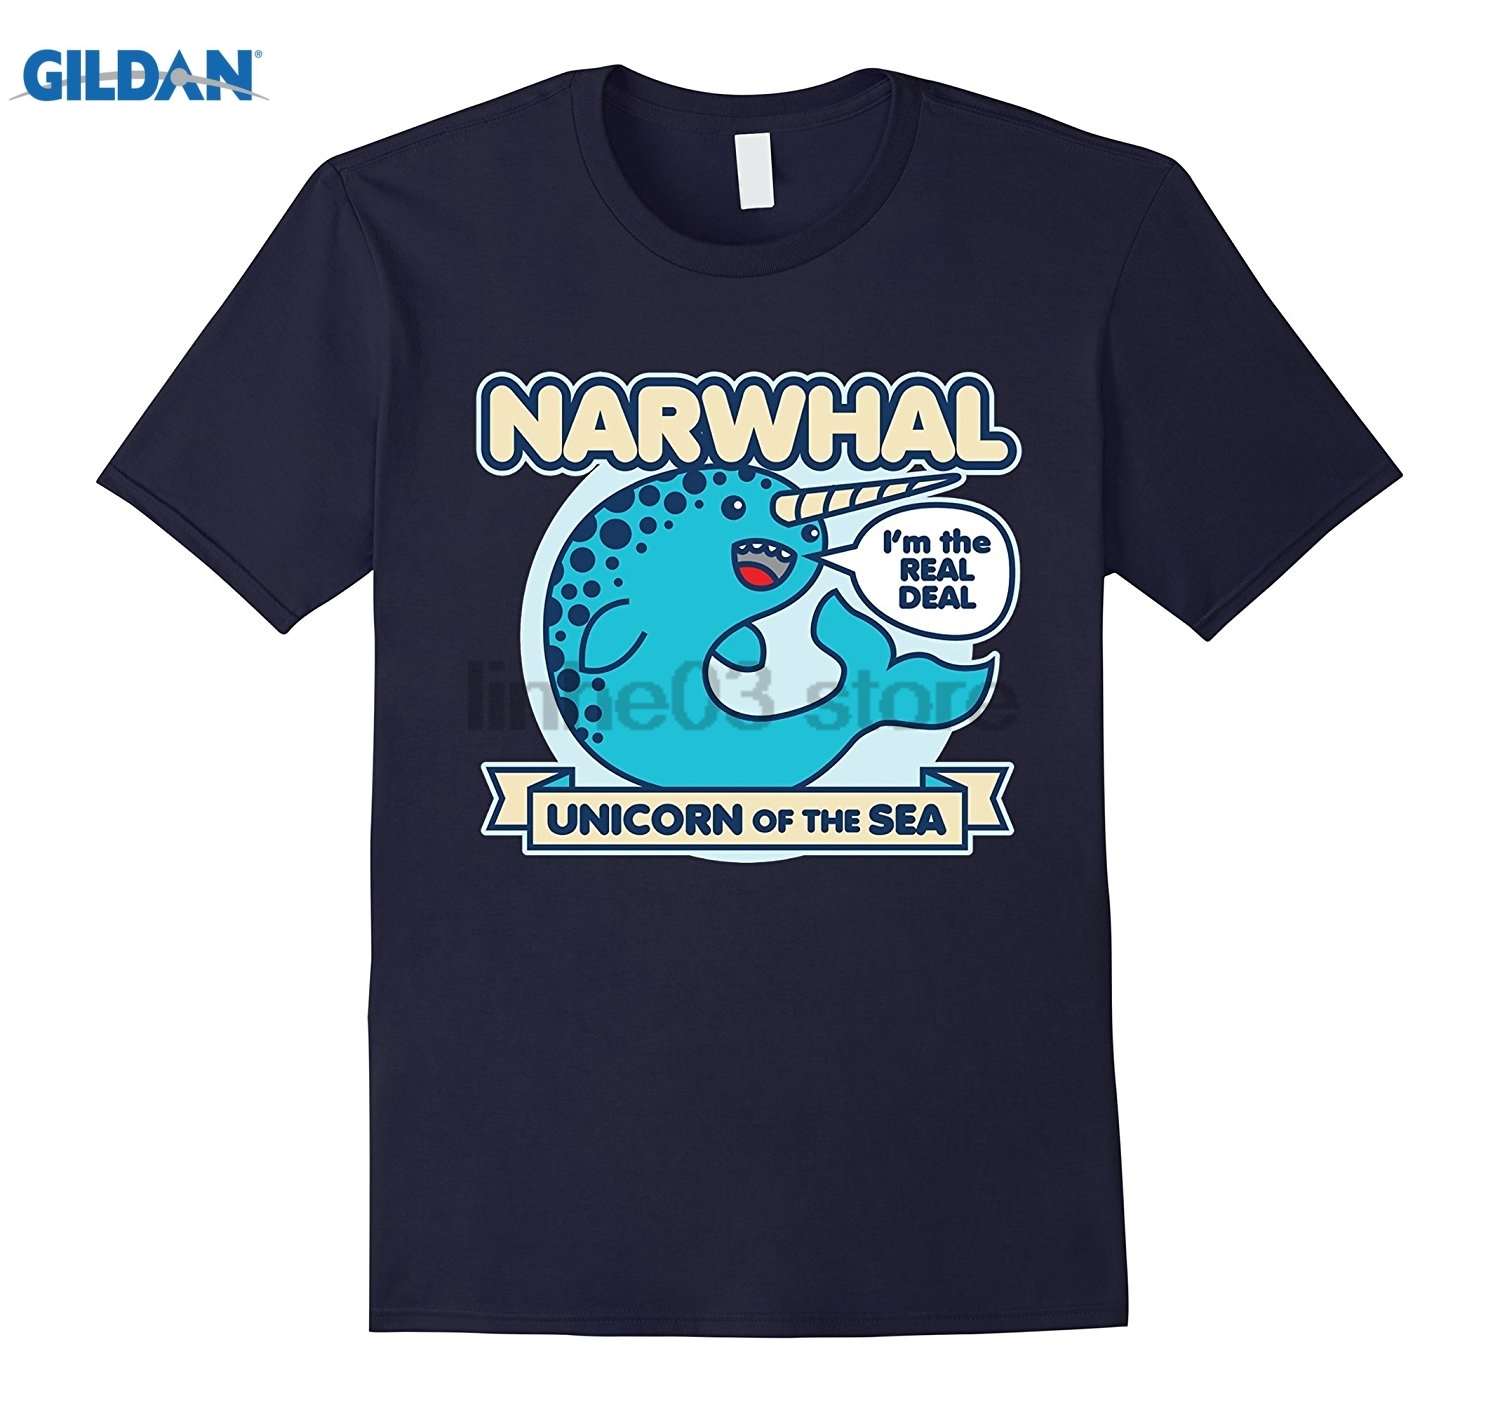 GILDAN Narwhal T-Shirt - Unicorn Of The Sea T-Shirt dress T-shirt